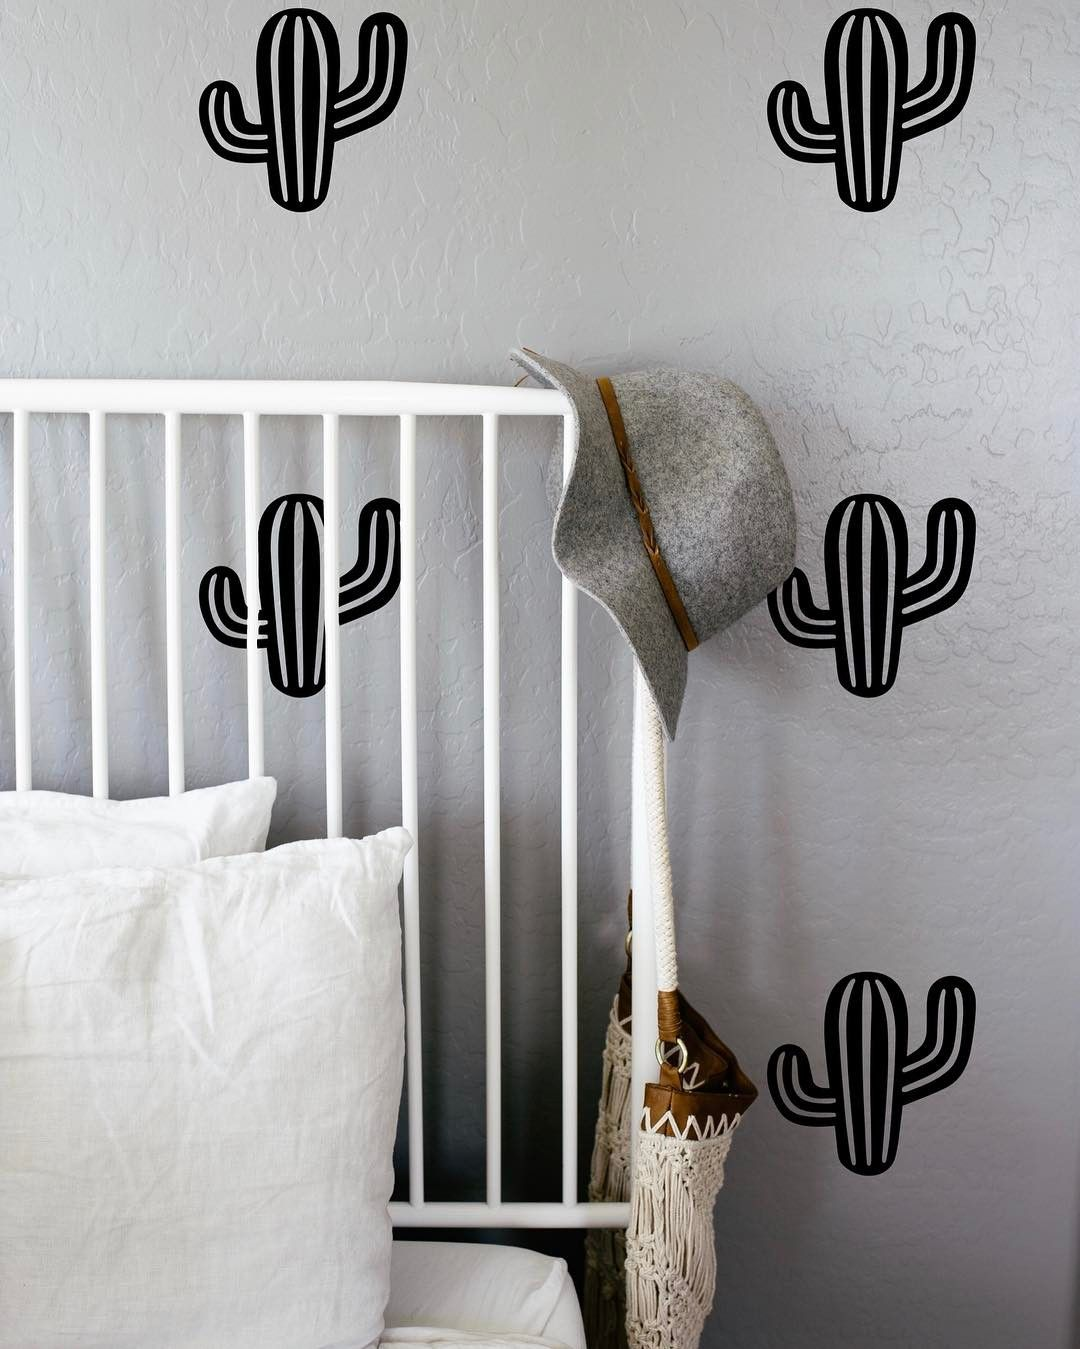 Are you cactus crazy like me ?!  If so you can snag a set of these wall decals at levilovelydesigns.etsy.com in March for LL's (online) grand opening! Plant lady is the new cat lady y'all!  #plantlady #cactusgram